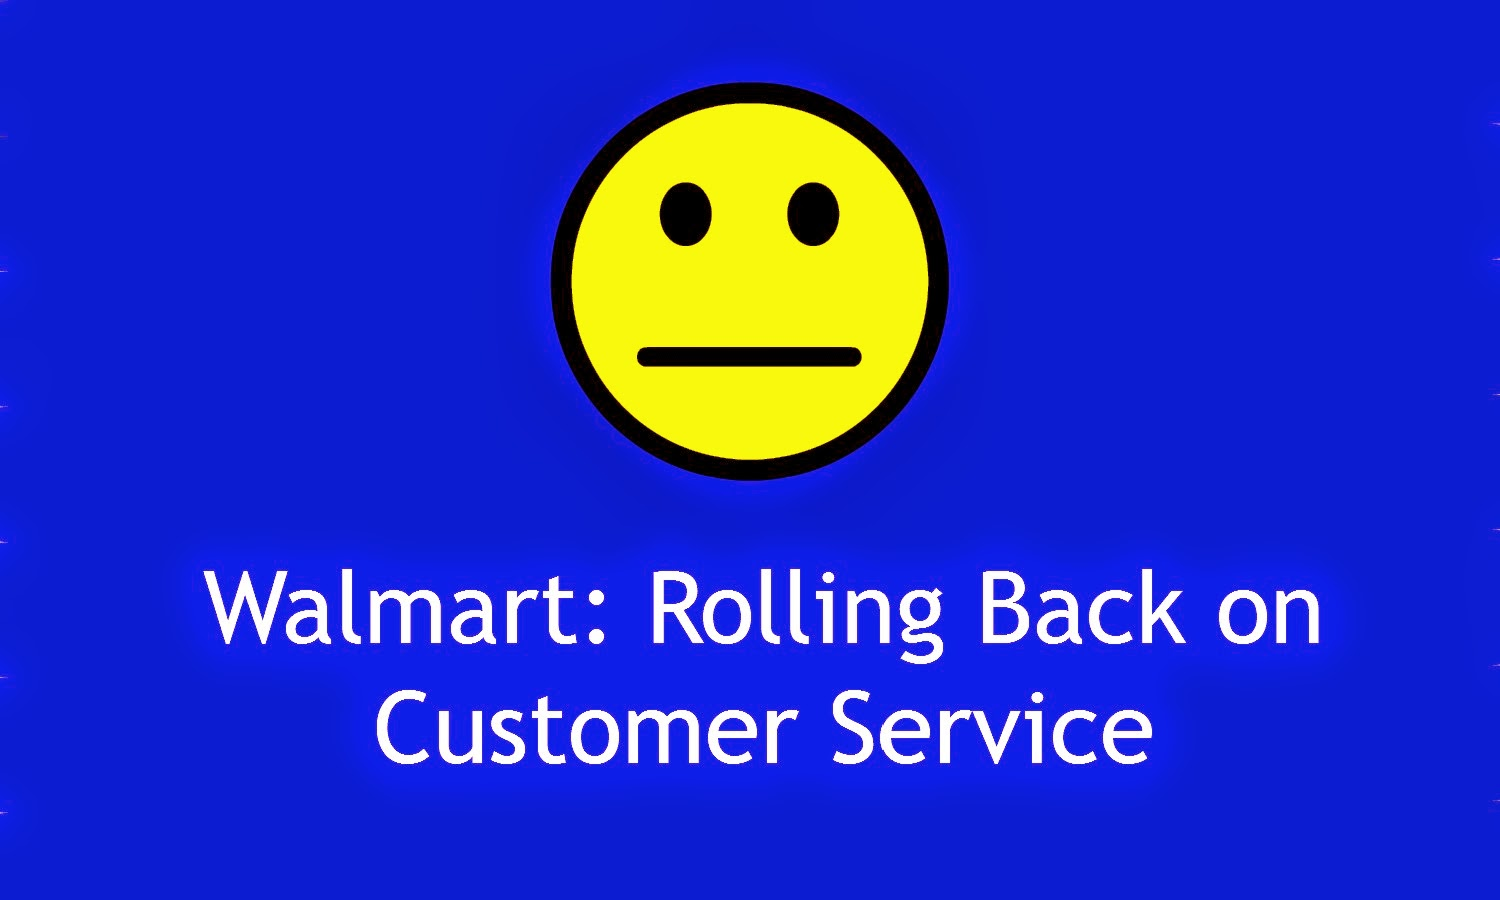 walmart customer service essay 4 reasons walmart is the most-hated retailer in america  he says the customer service problems at the retailer often start with a shopper's inability to get anyone to help them find what they .